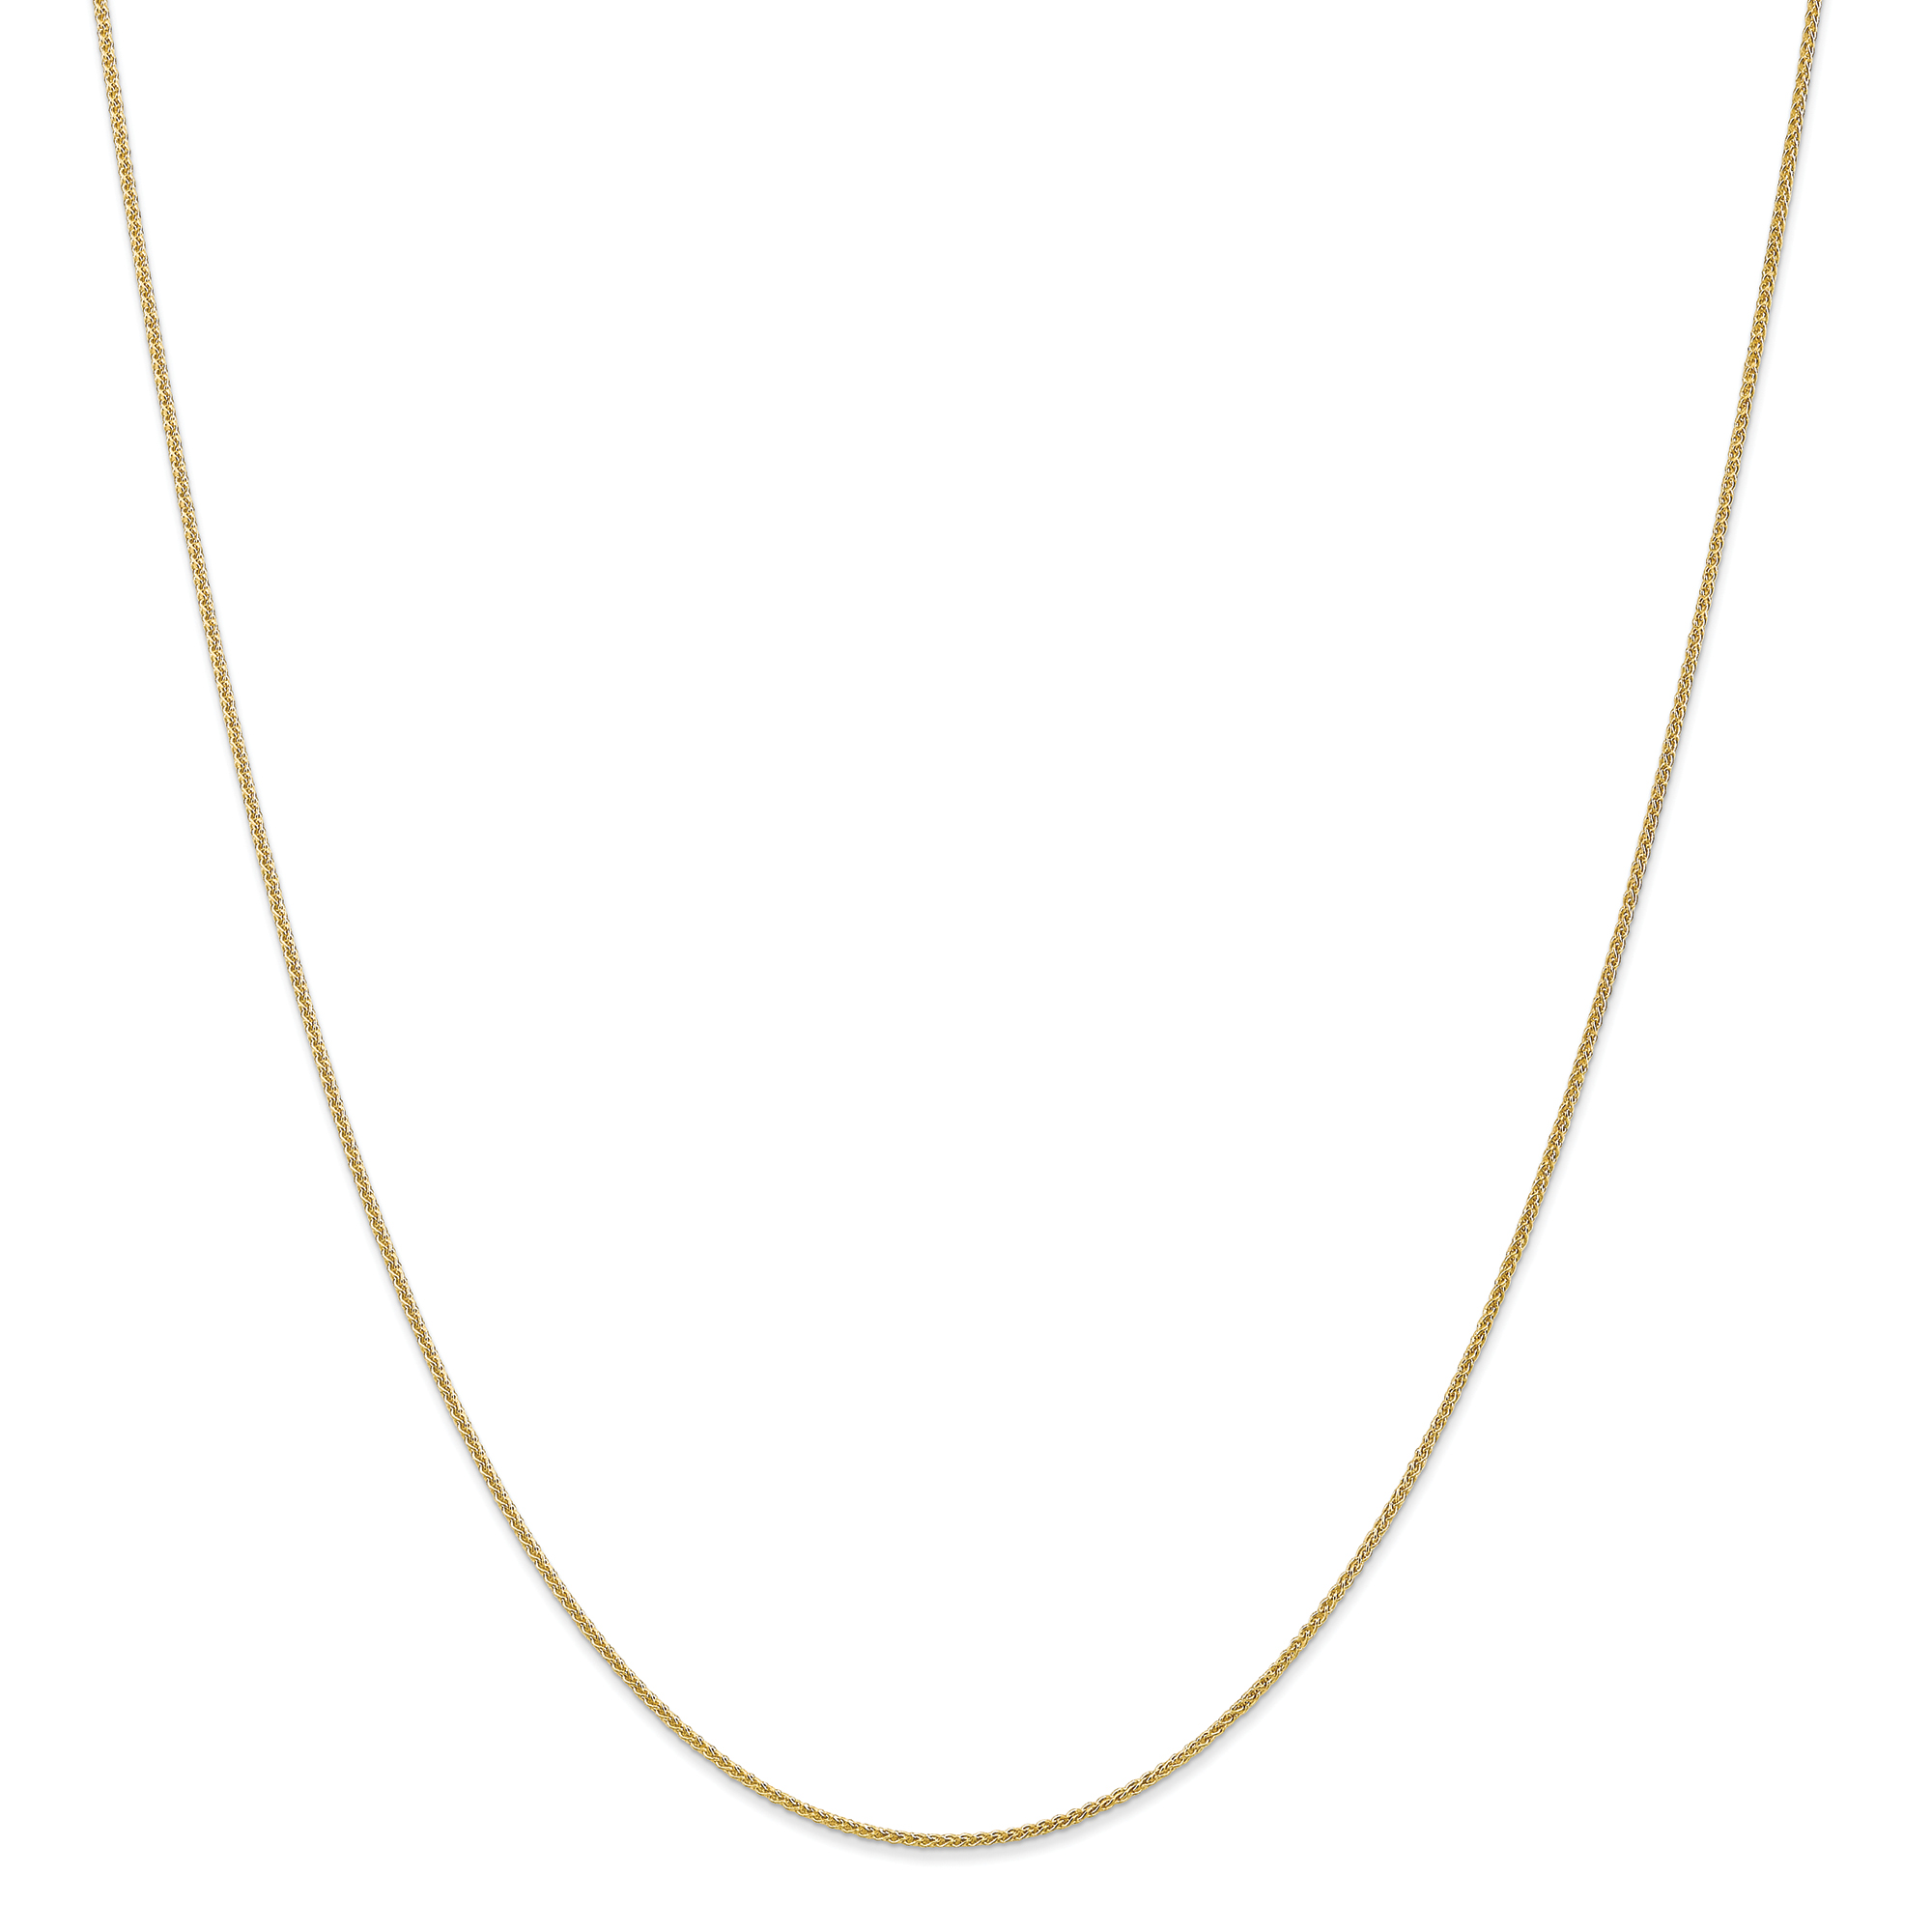 10k Yellow 20in Gold 1.00mm Wheat Necklace Chain